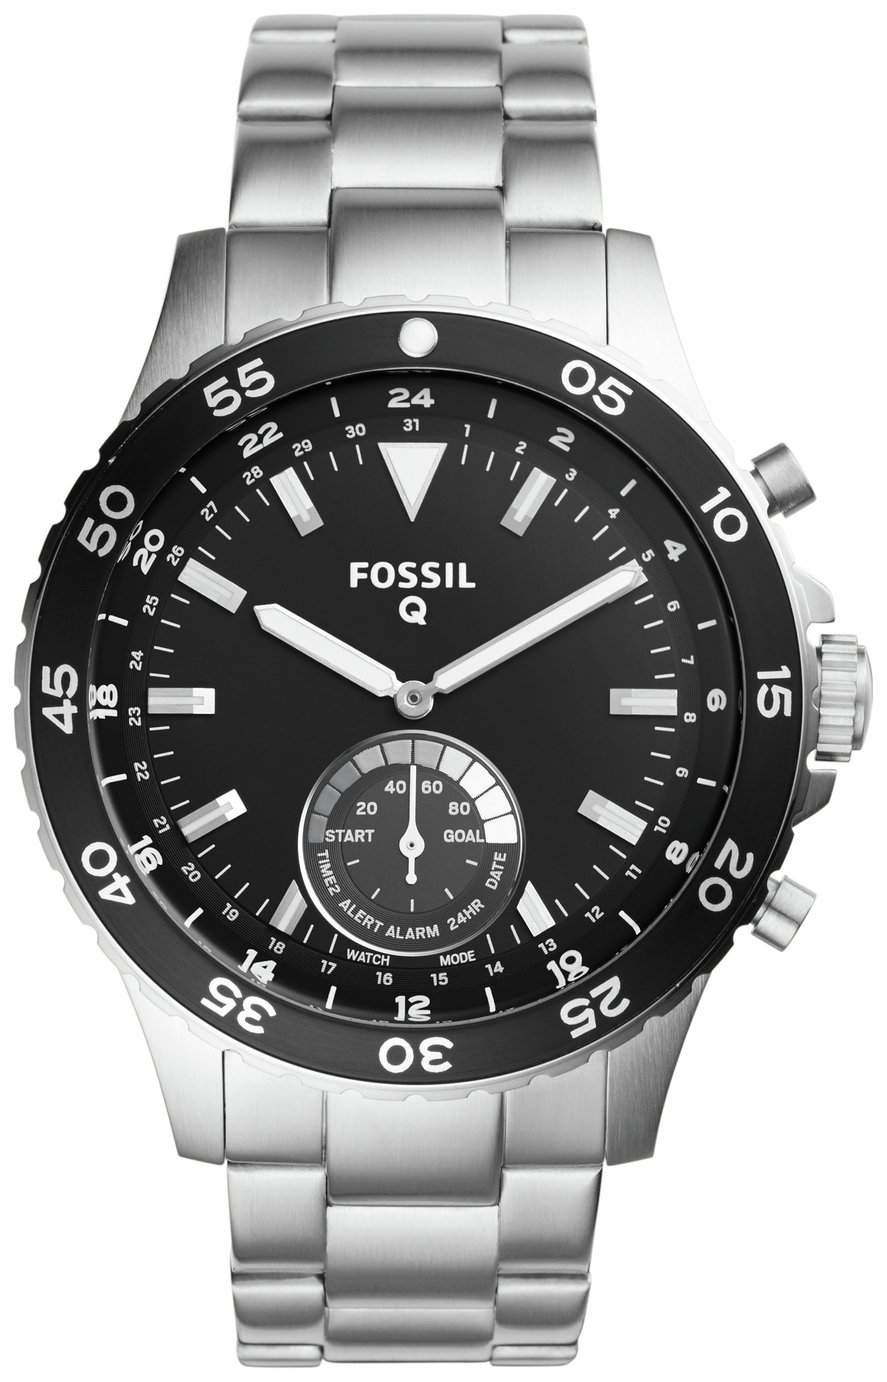 Image of Fossil Q Crewmaster Stainless Steel Hybrid Smart Watch